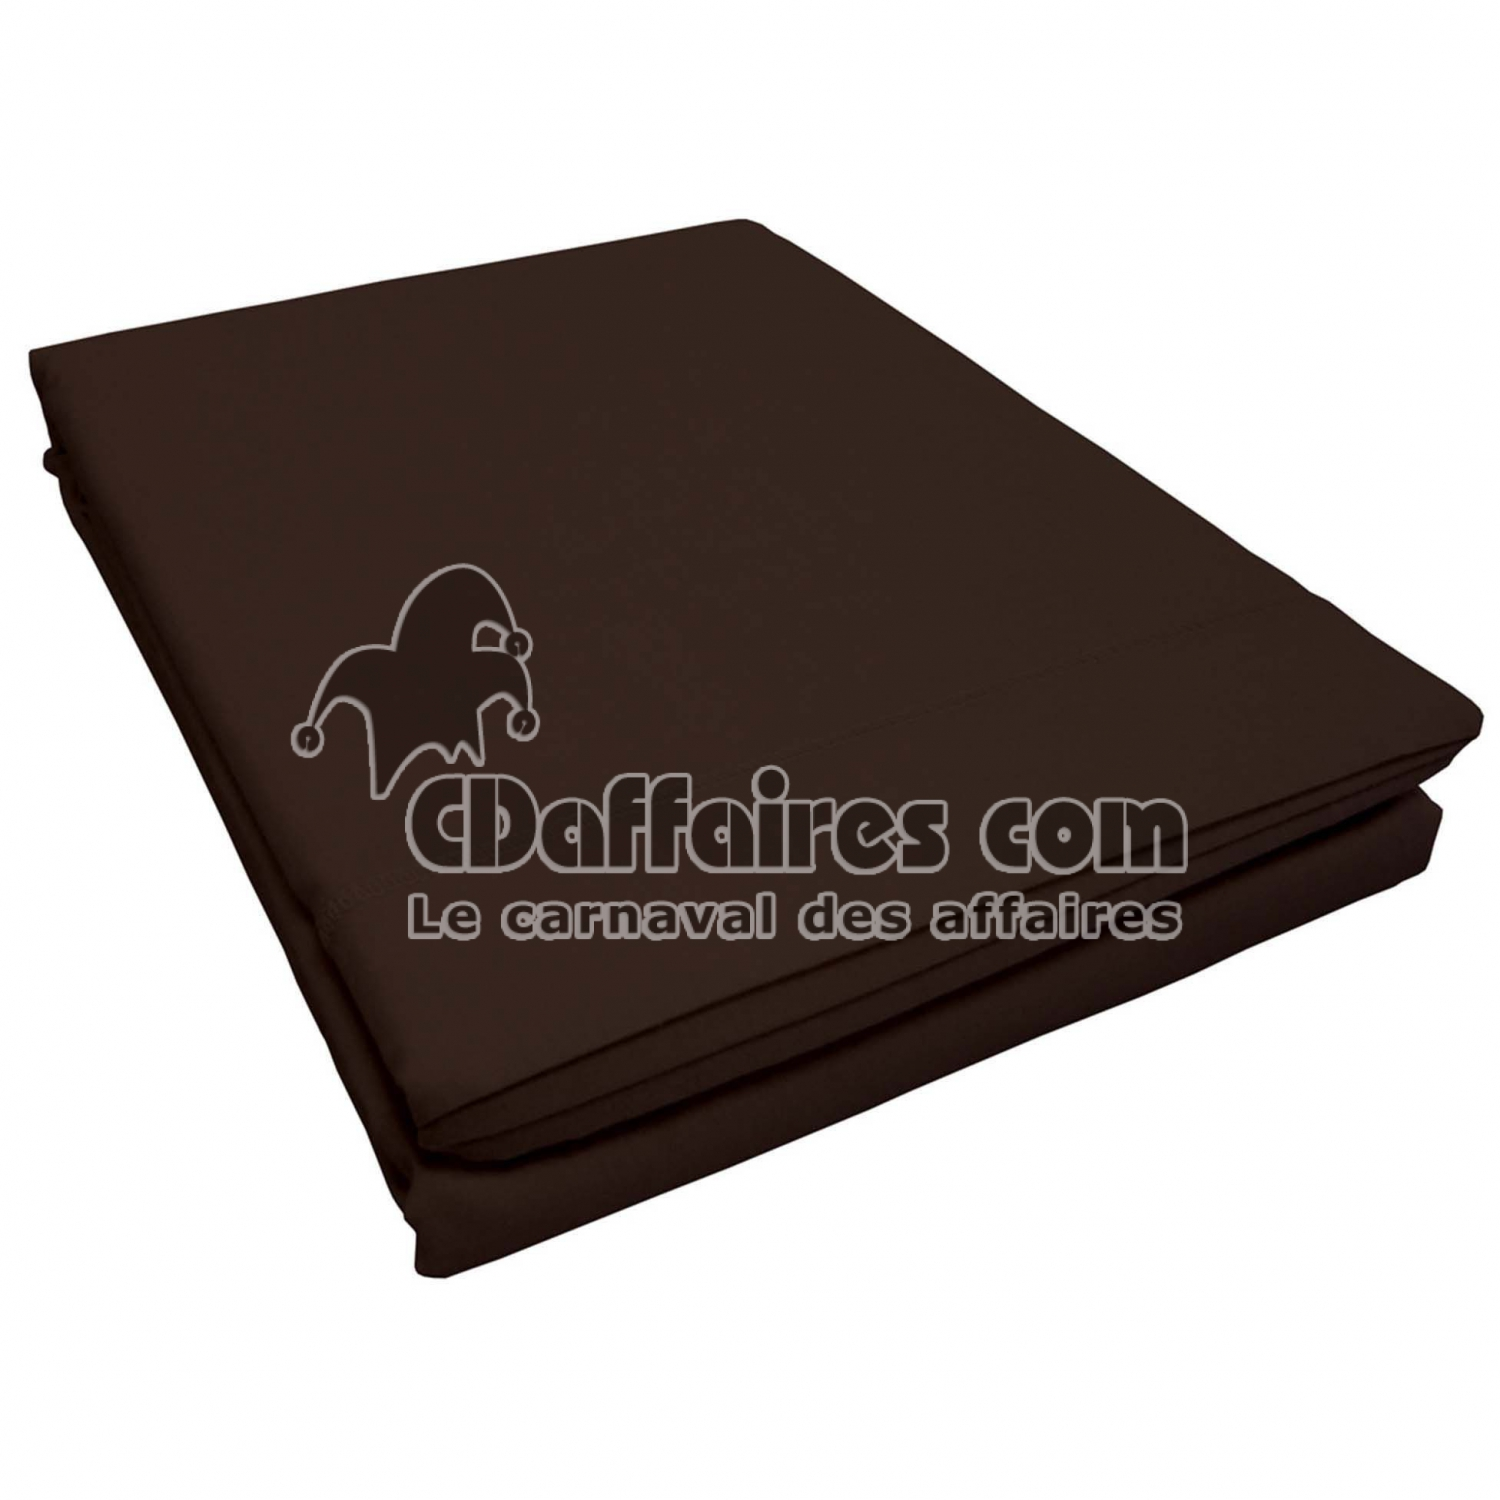 drap plat 2 personnes 240 x 300 cm uni 57 fils lina point bourdon cacao c. Black Bedroom Furniture Sets. Home Design Ideas